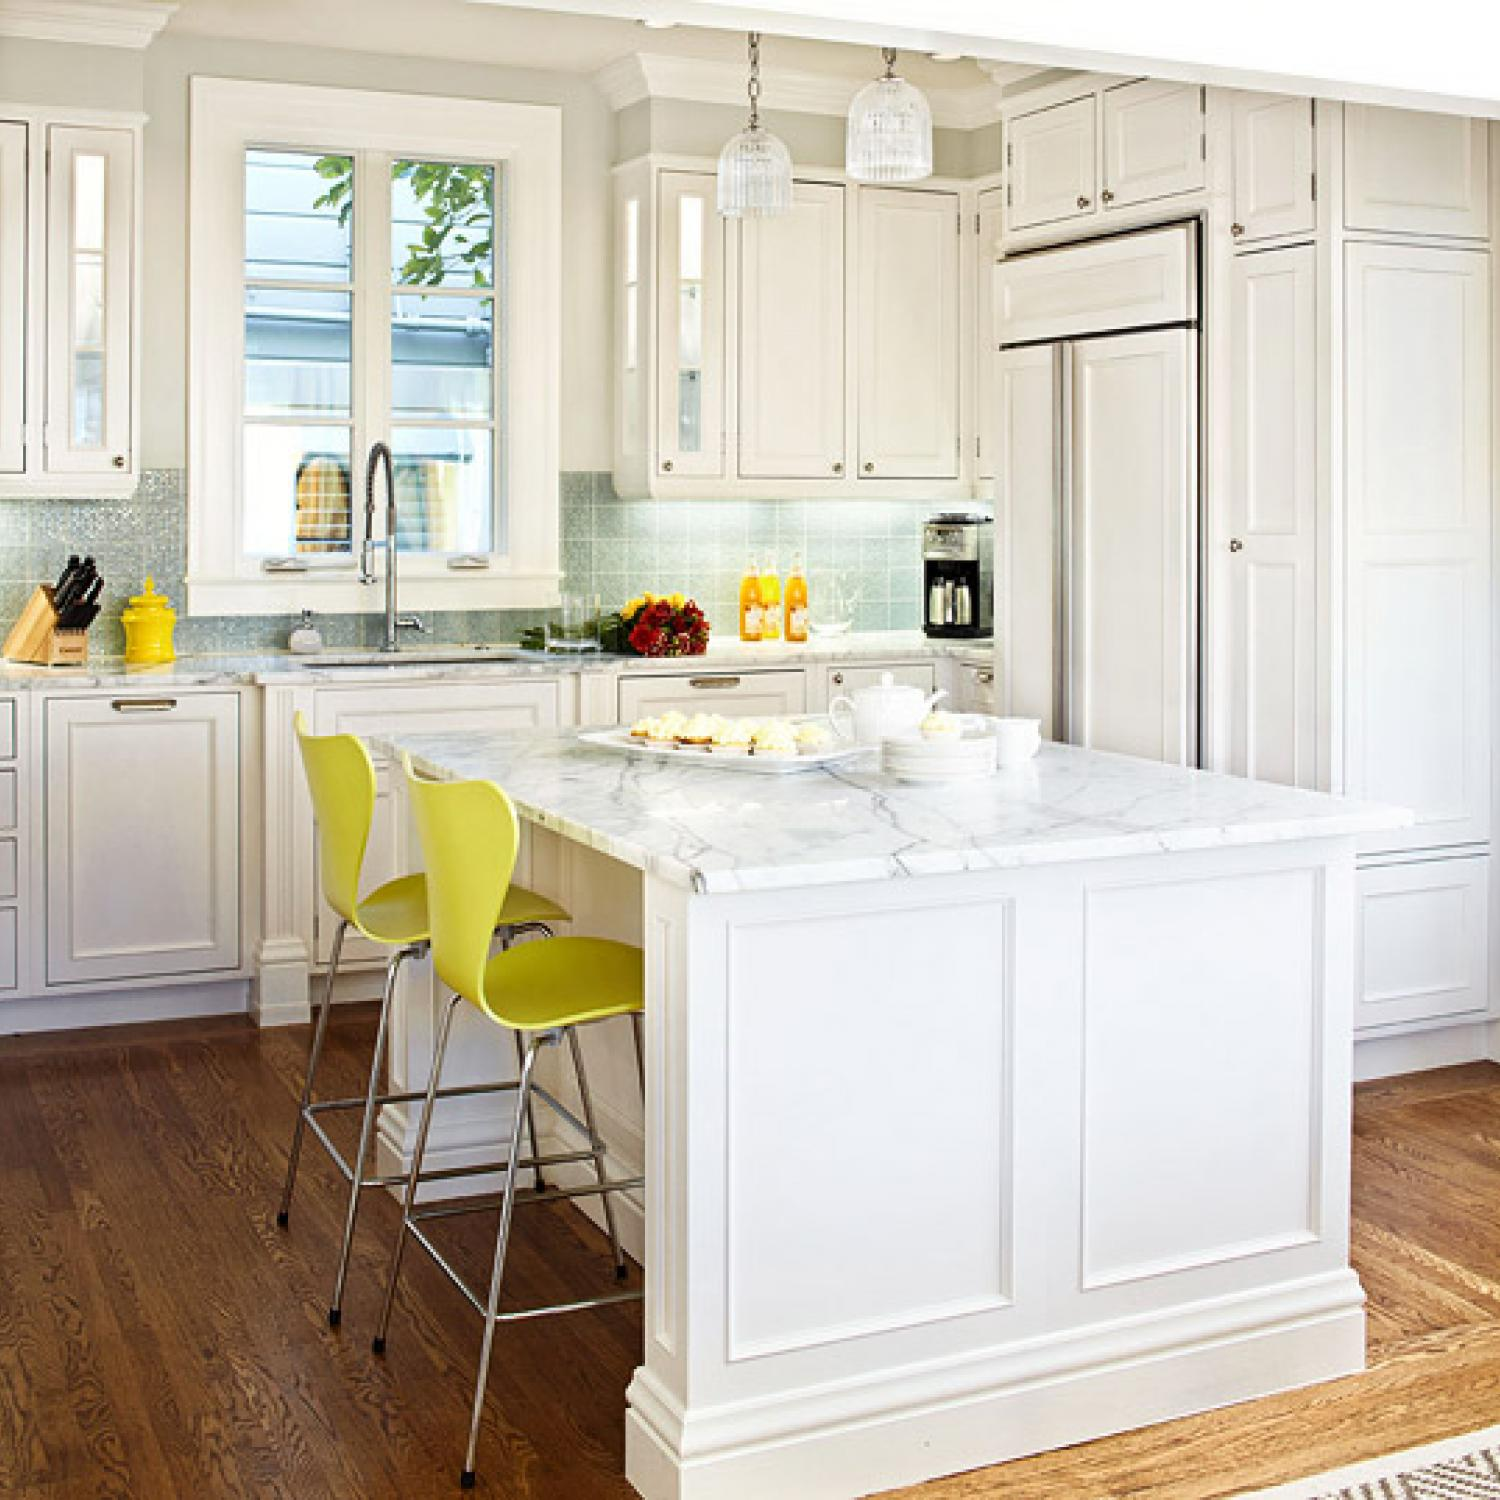 Kitchen Cabinet Ideas: Design Ideas For White Kitchens